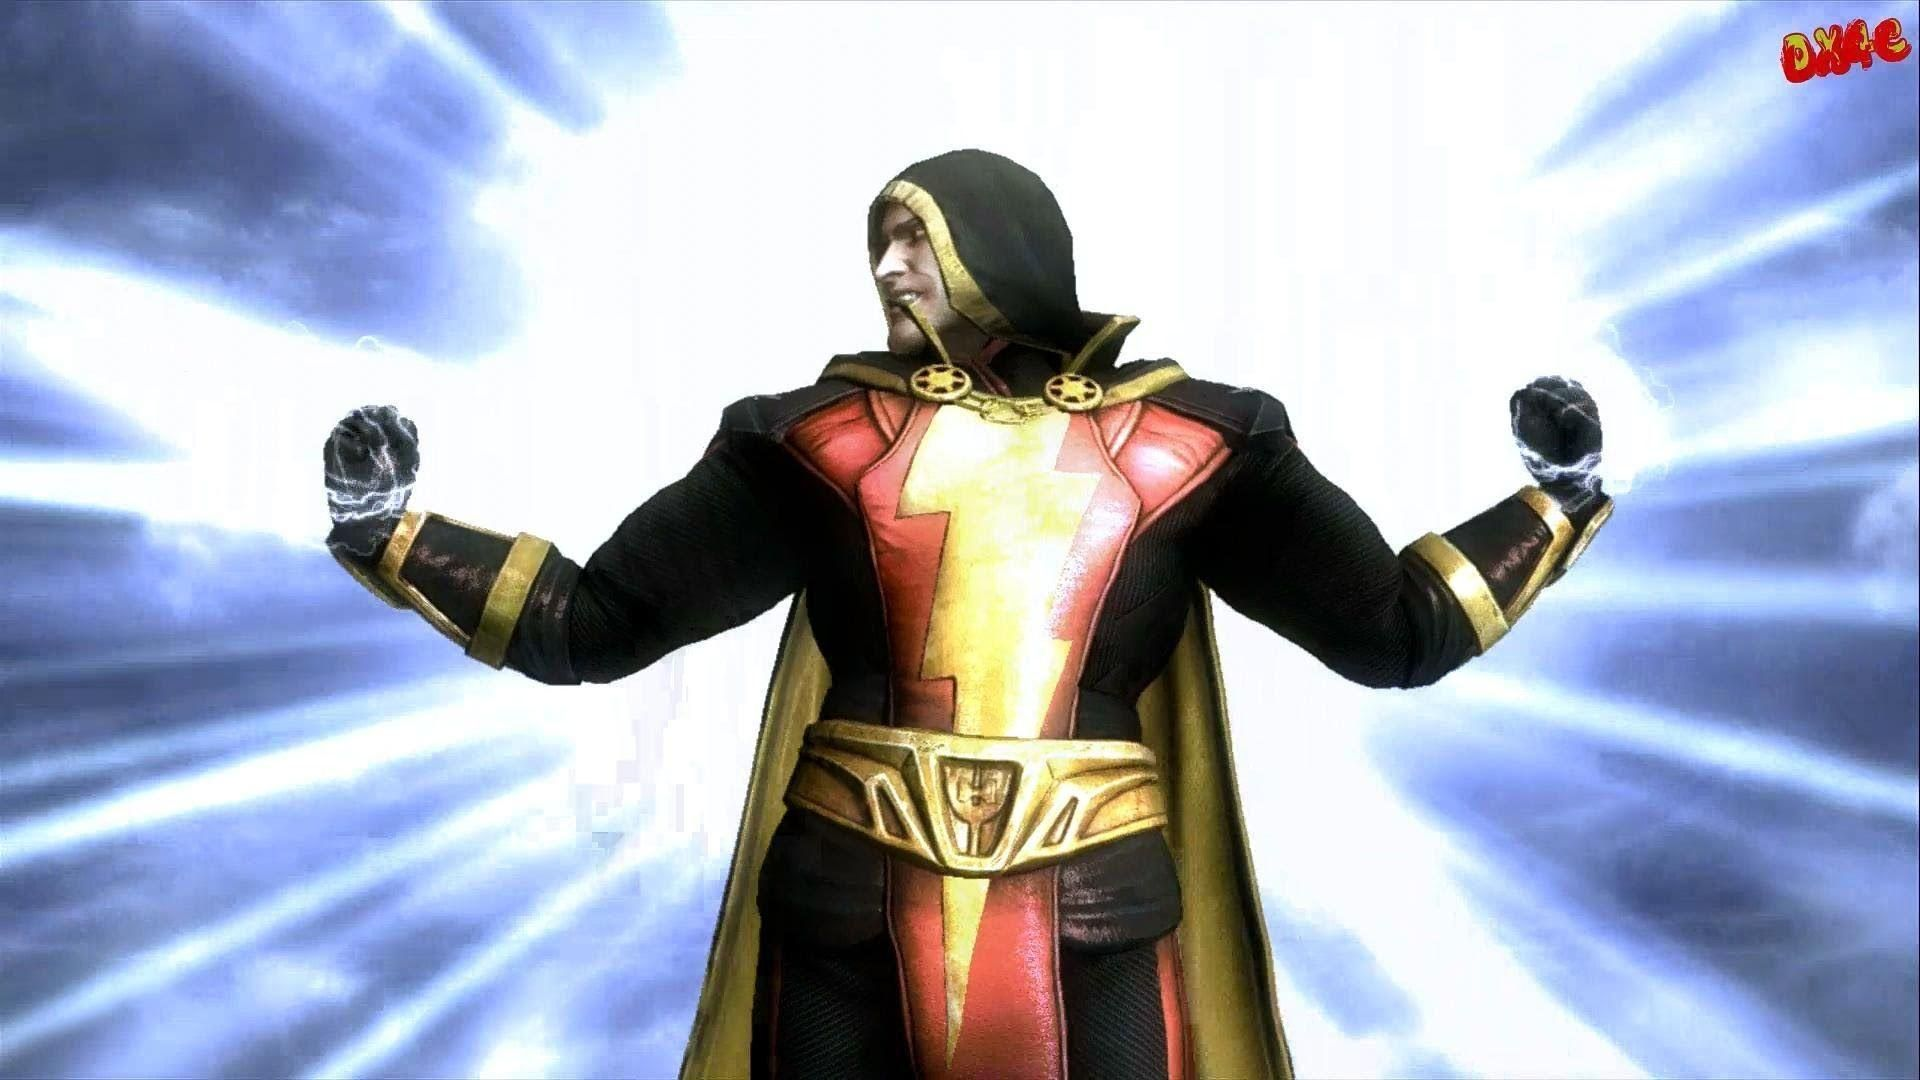 Images For Shazam Injustice Wallpaper Background Hd In